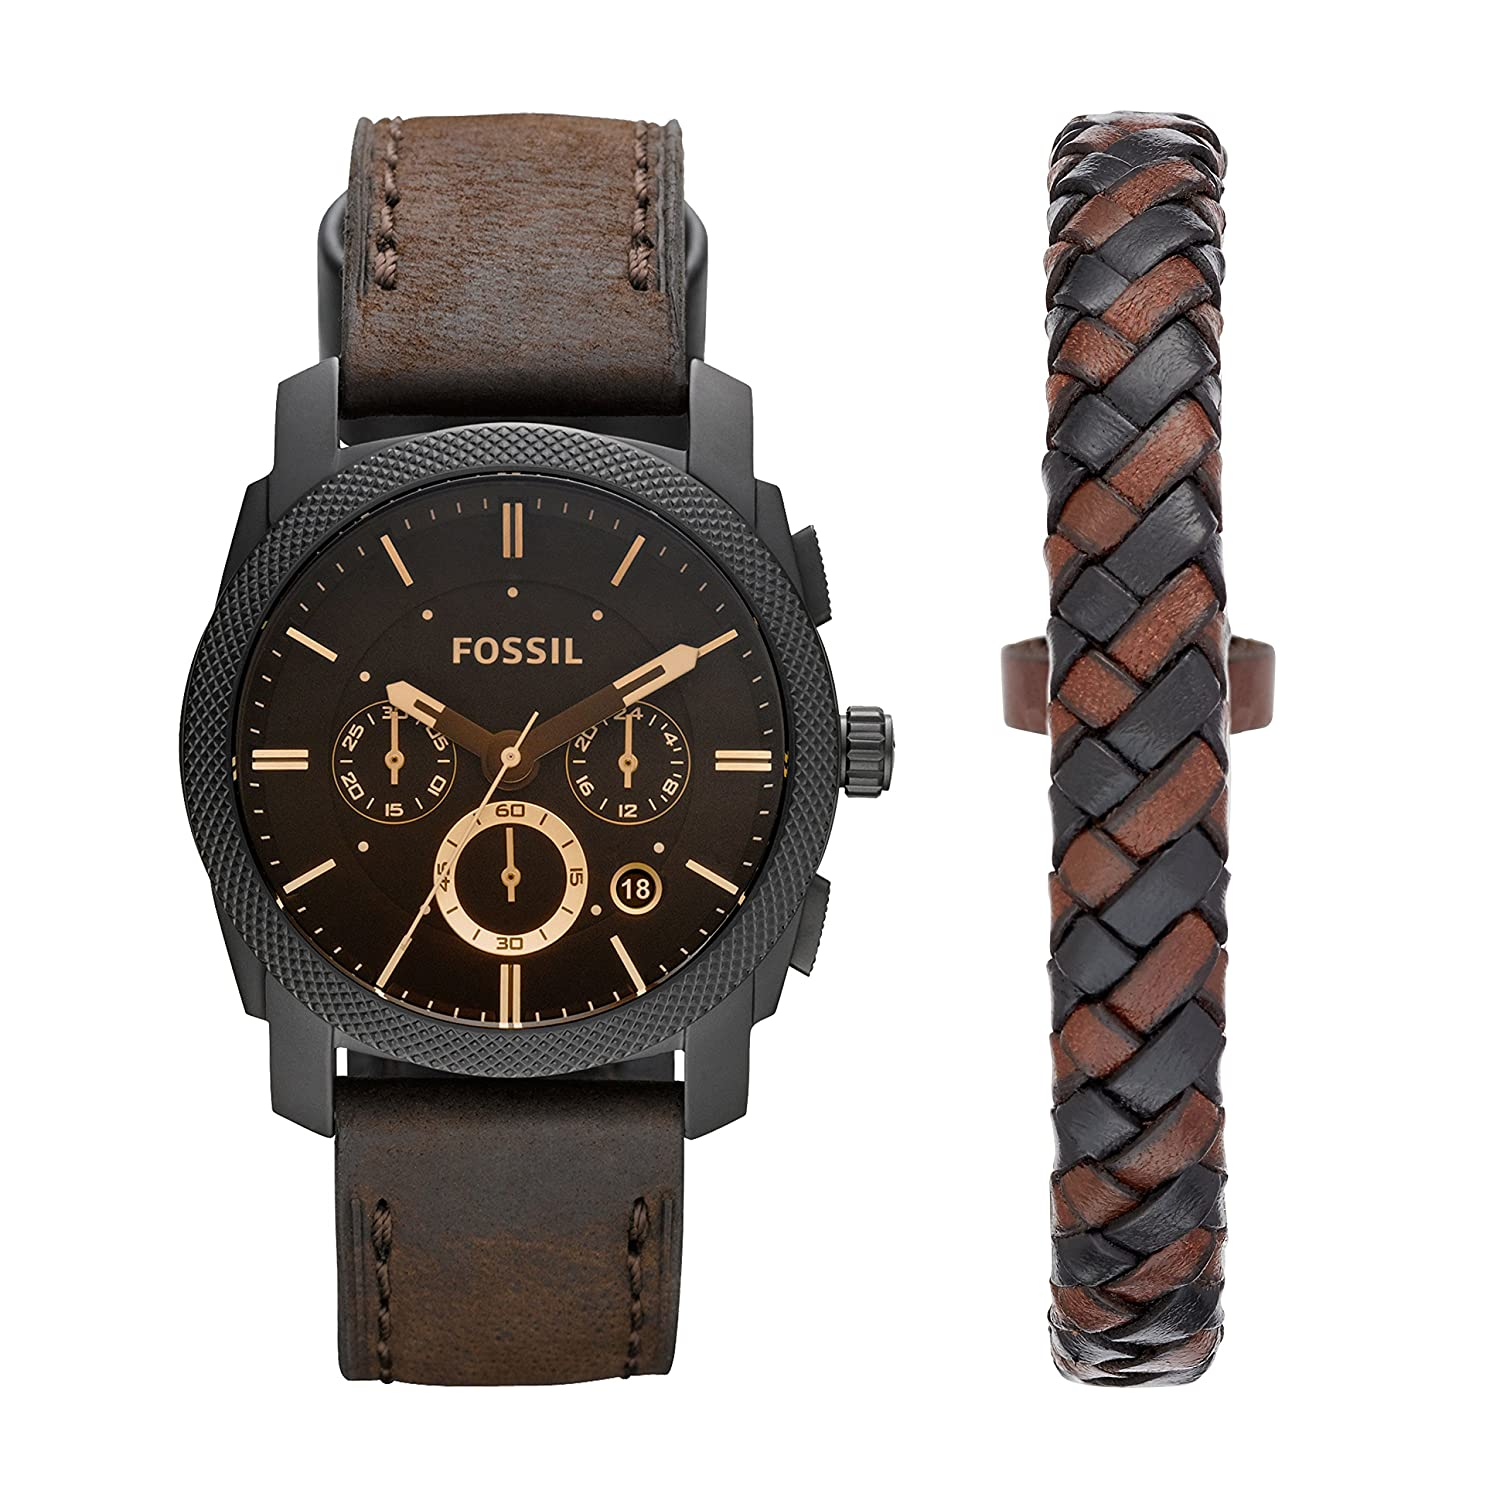 Favori Fossil Montre Homme FS5251SET: Amazon.fr: Montres UW81